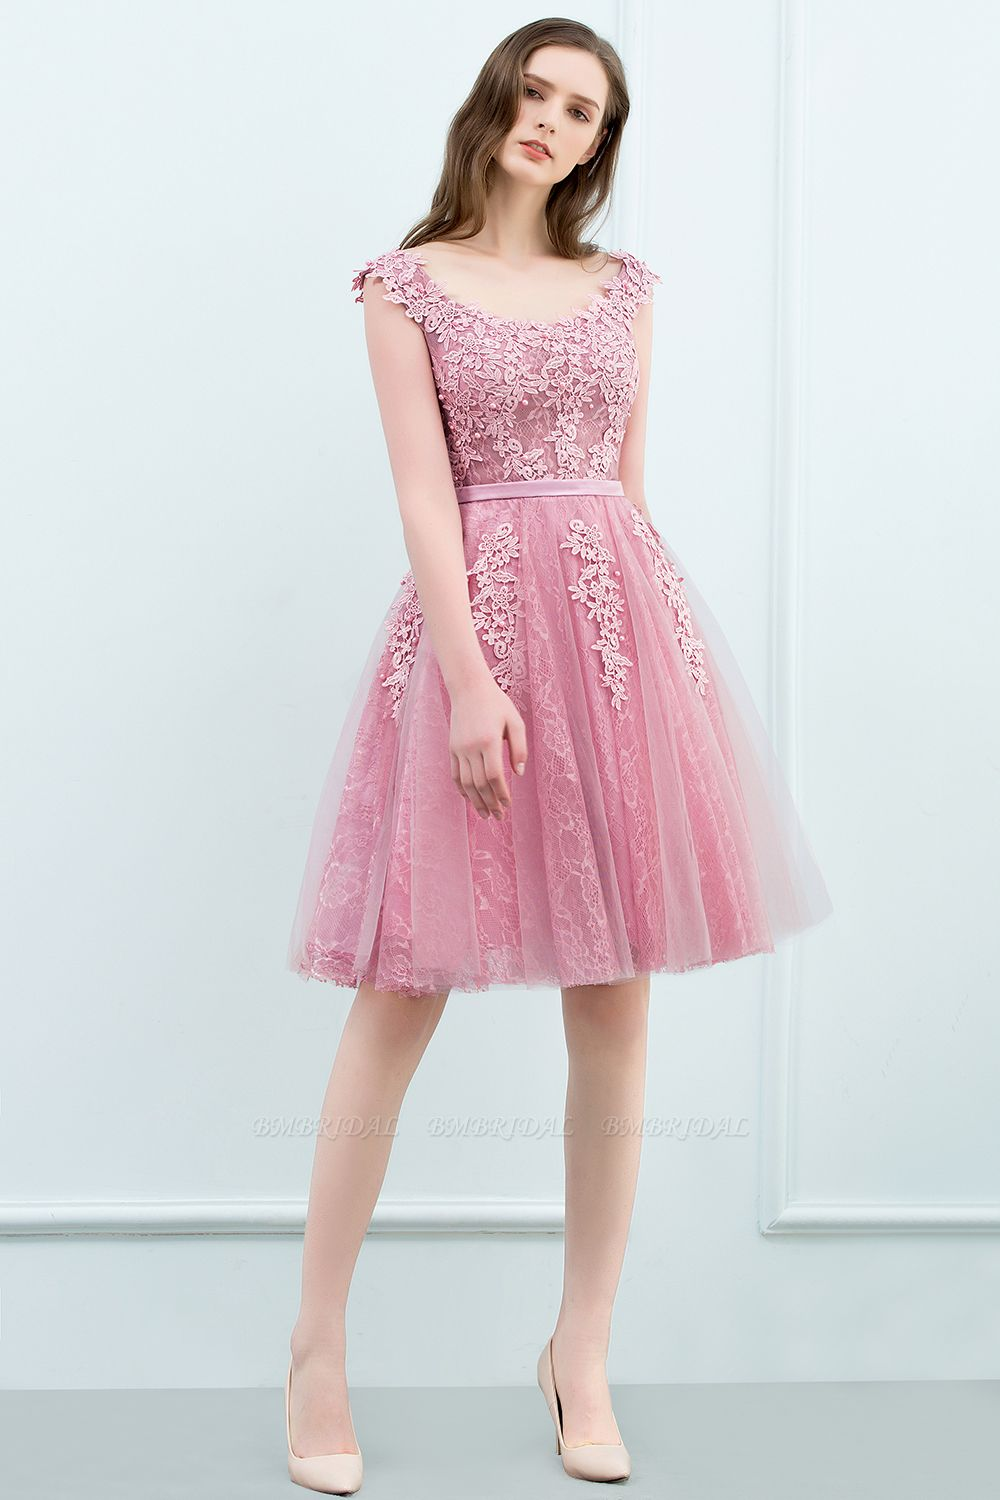 BMbridal Lovely Dusty Pink Short Homecoming Dress With Lace Appliques